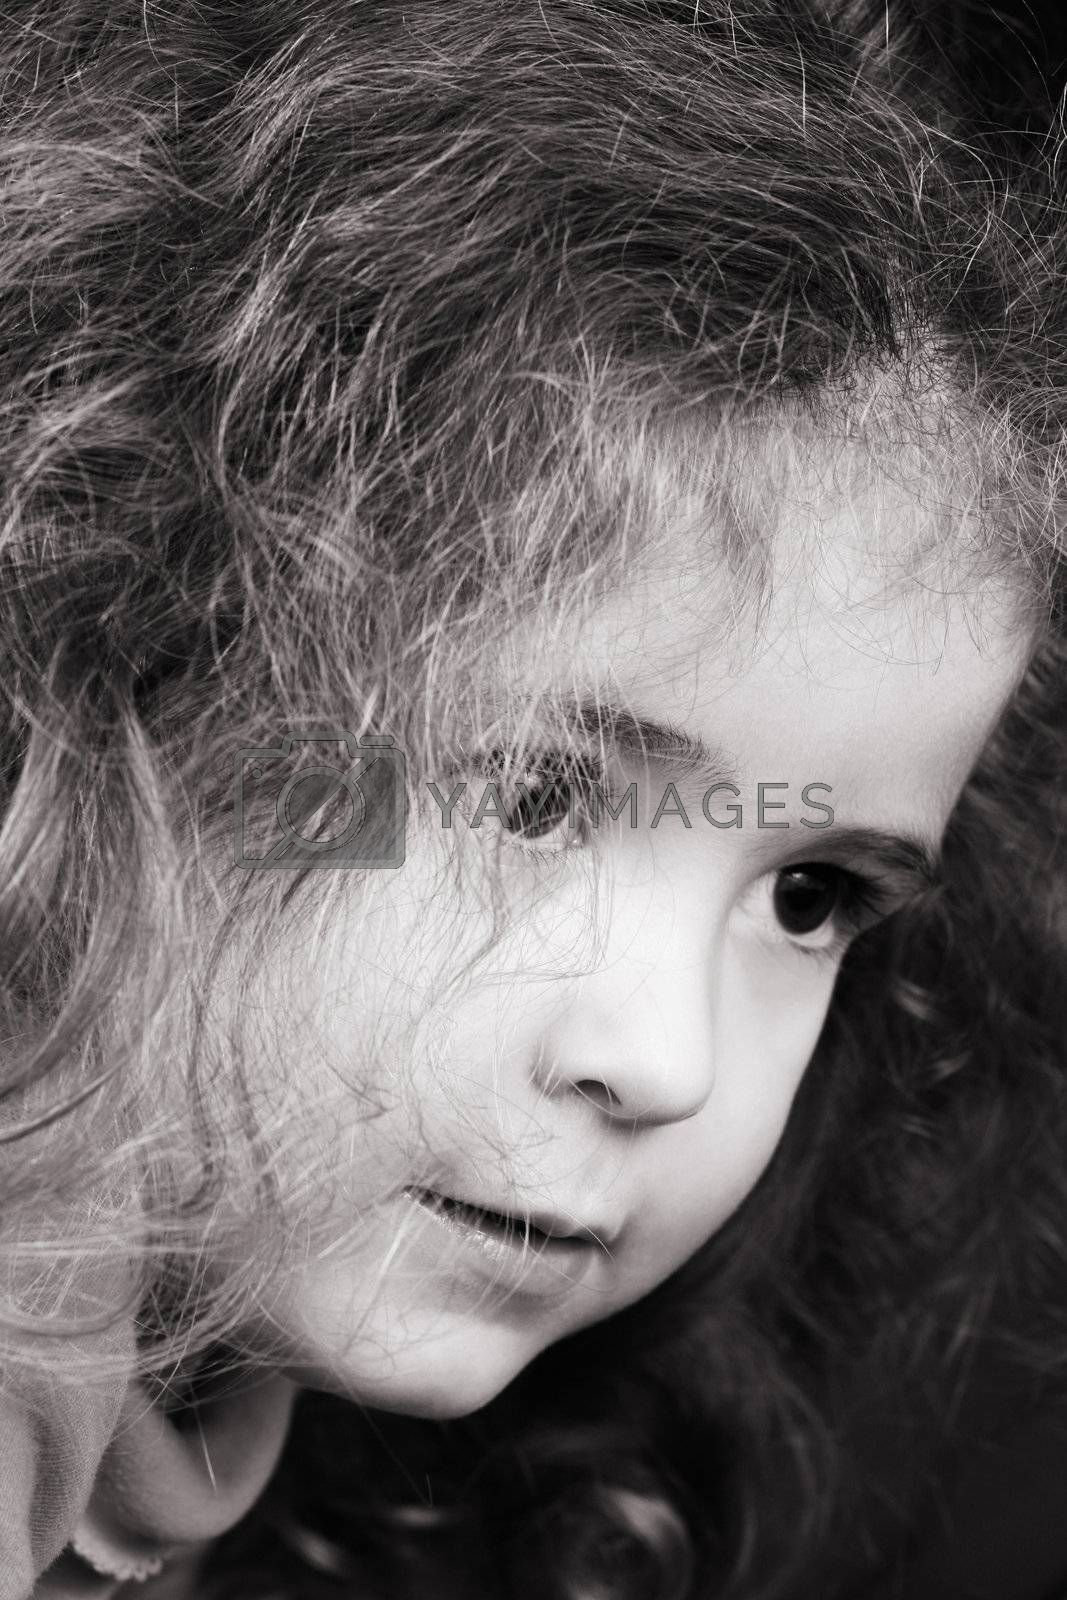 Beautiful young girl with curly hair and cute features